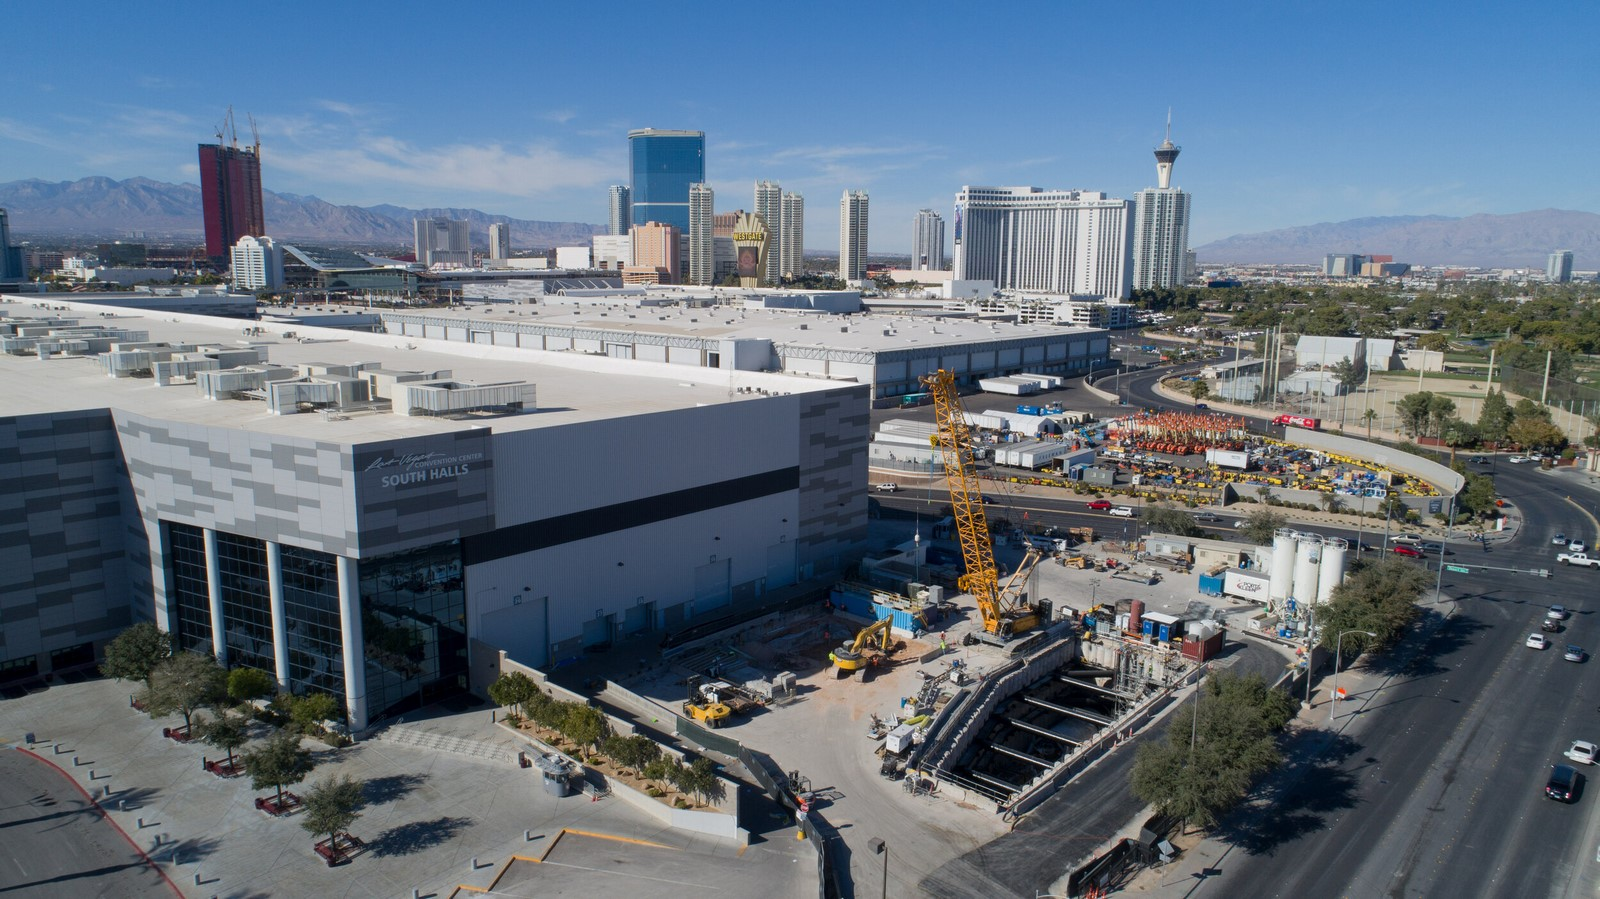 The People Mover- Las Vegas Convention Center Loop station, and its private shuttles revealed by Elon Musk - Sheet4